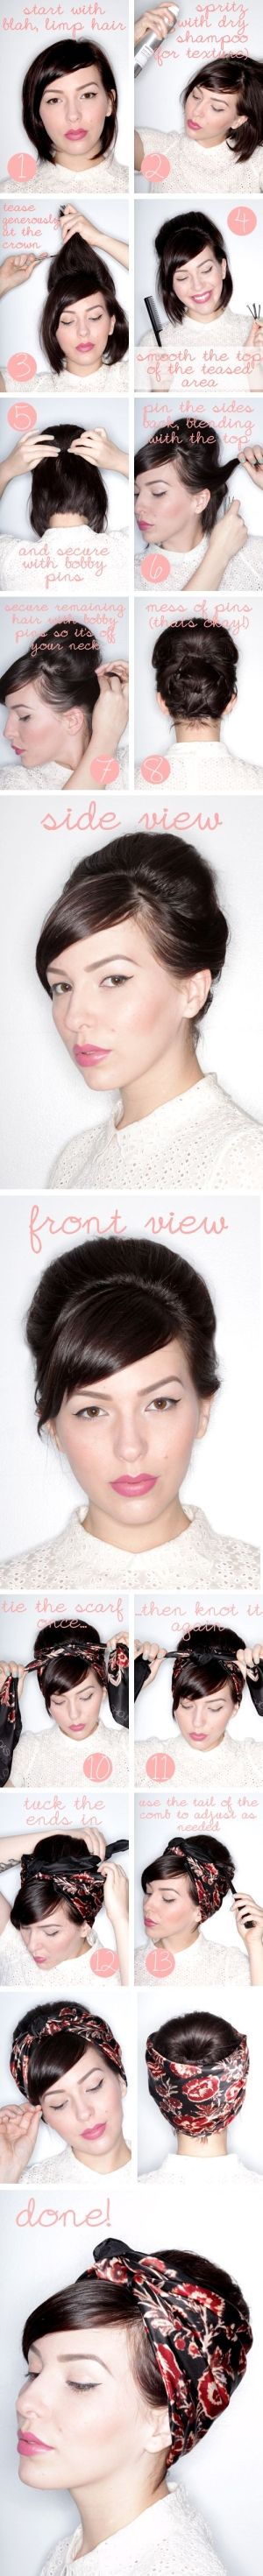 Faux Updo Tutorial For Short bob Hair by Graybird